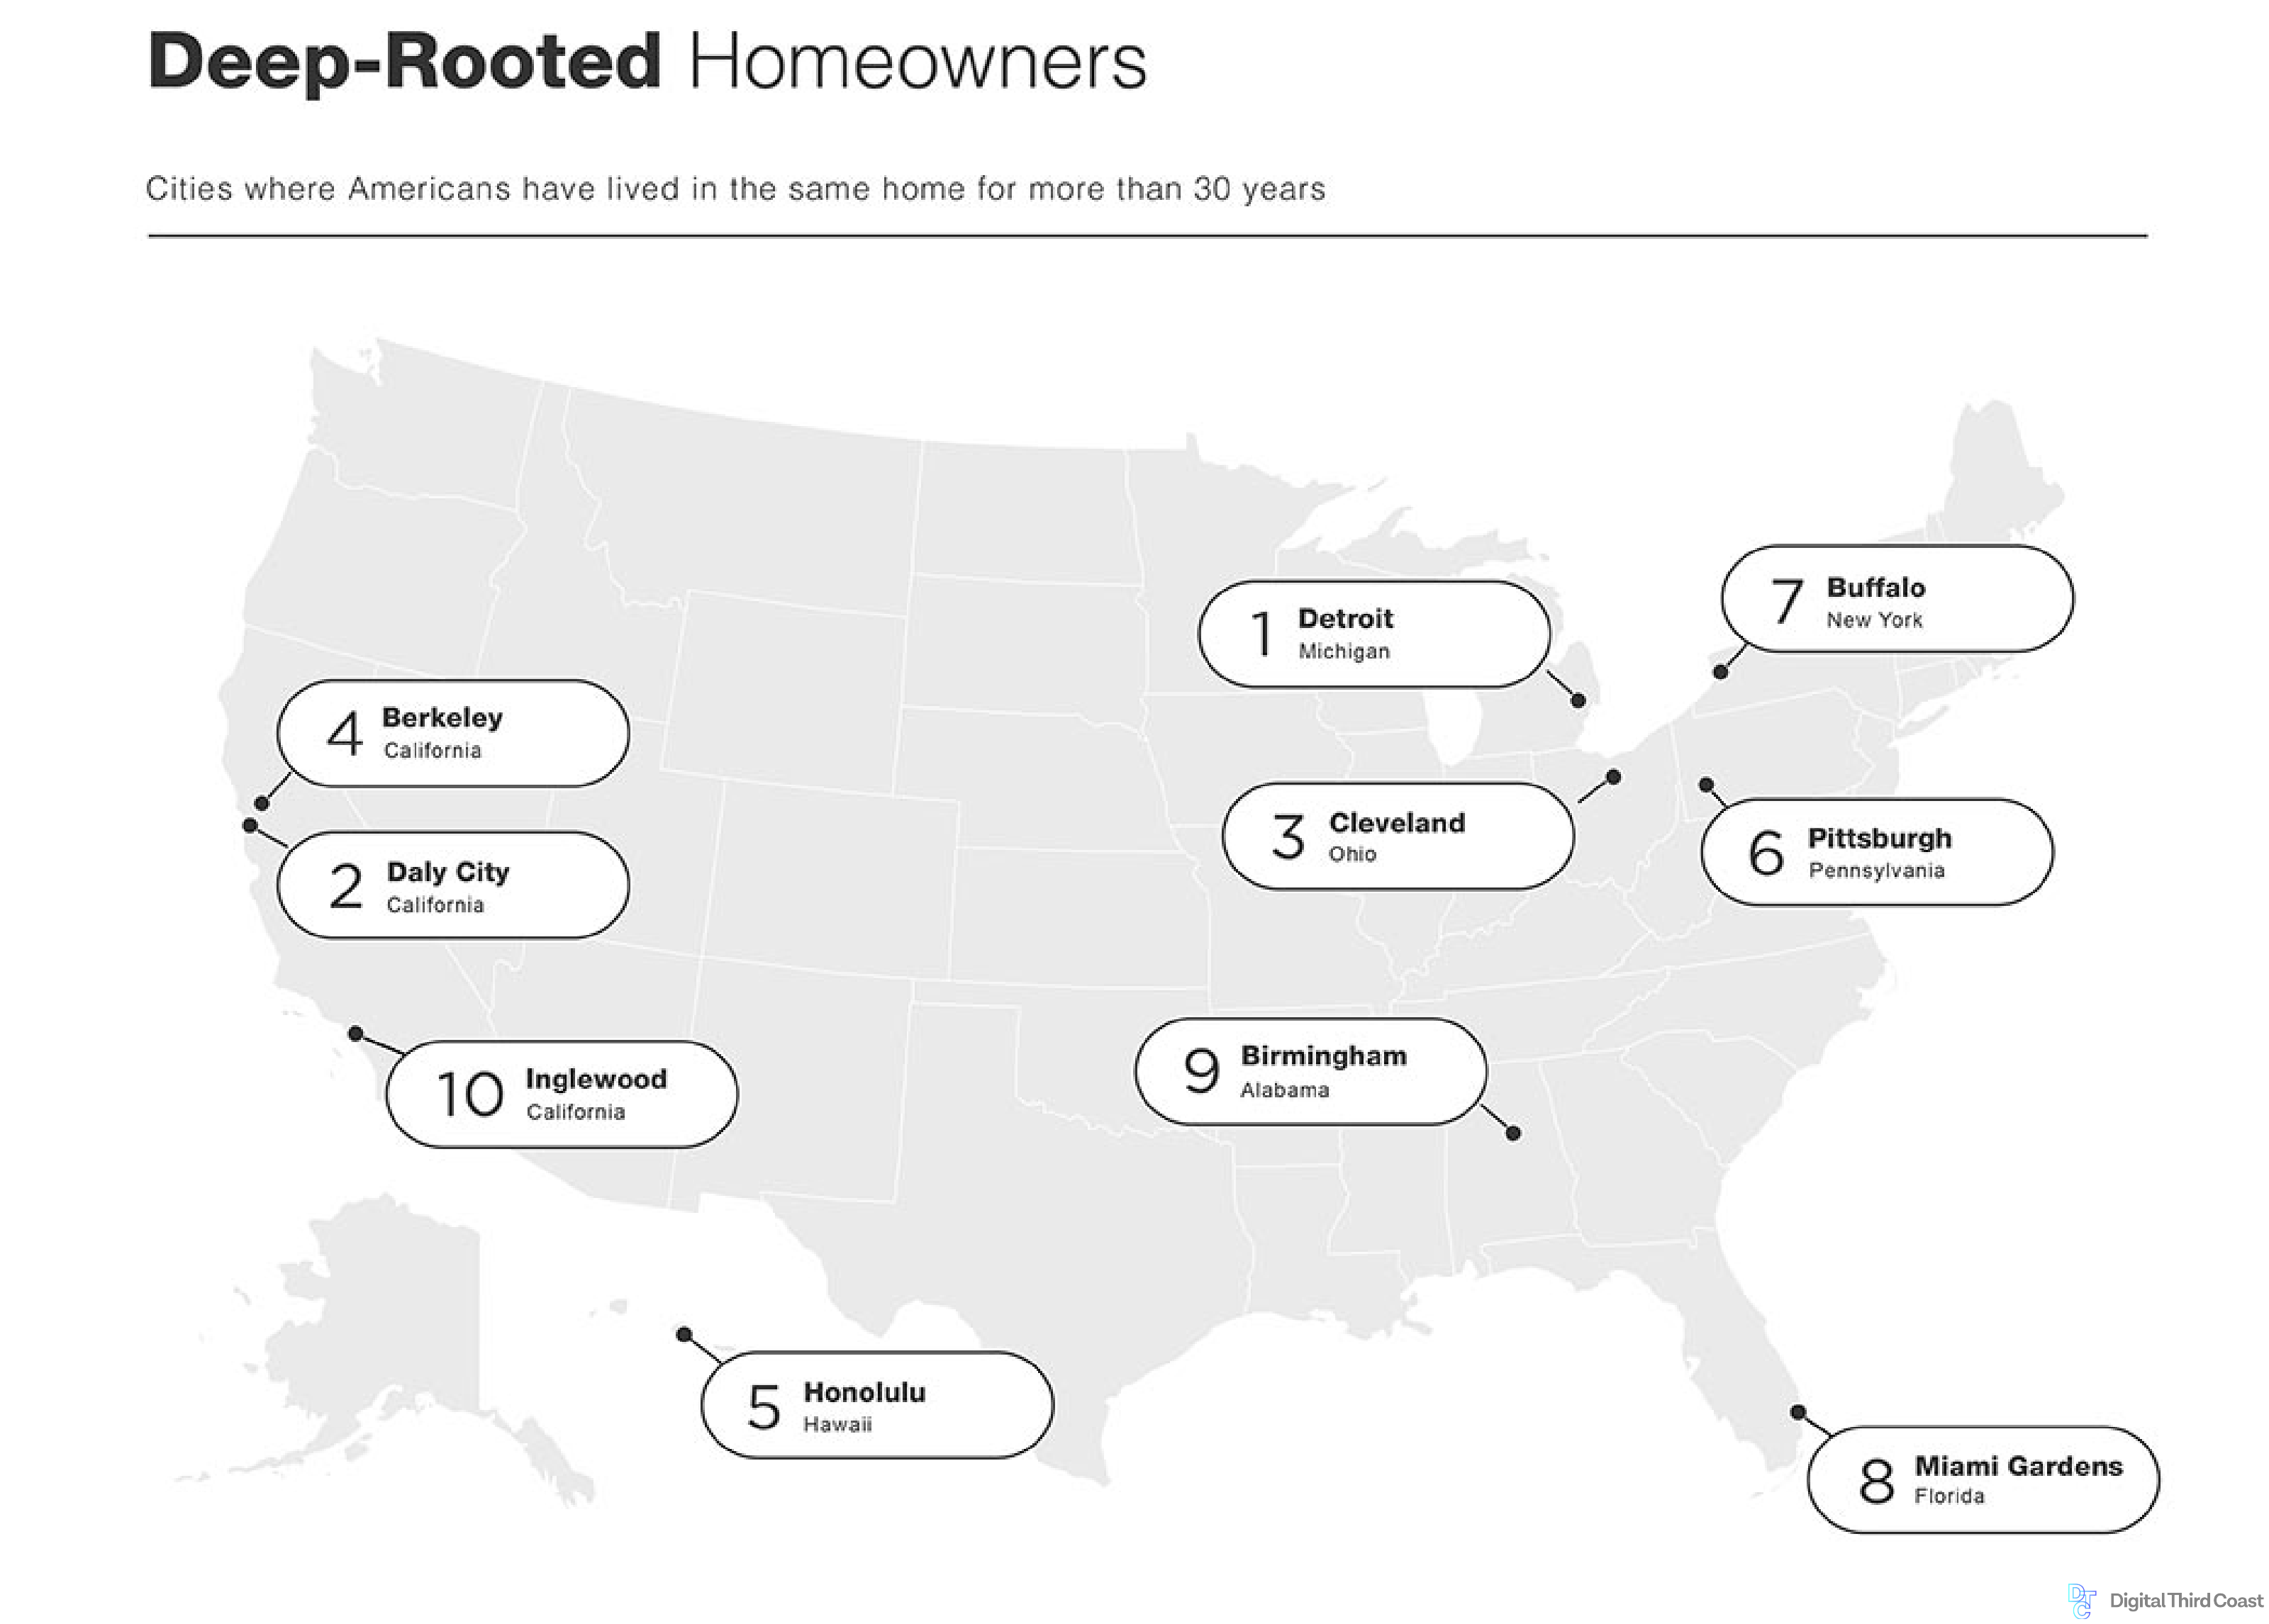 Map of the United States with the top 10 cities with the most deeply rooted homeowners: Detroit, Daly City, Cleveland, Berkeley, Honolulu, Pittsburgh, Buffalo, Birmingham.